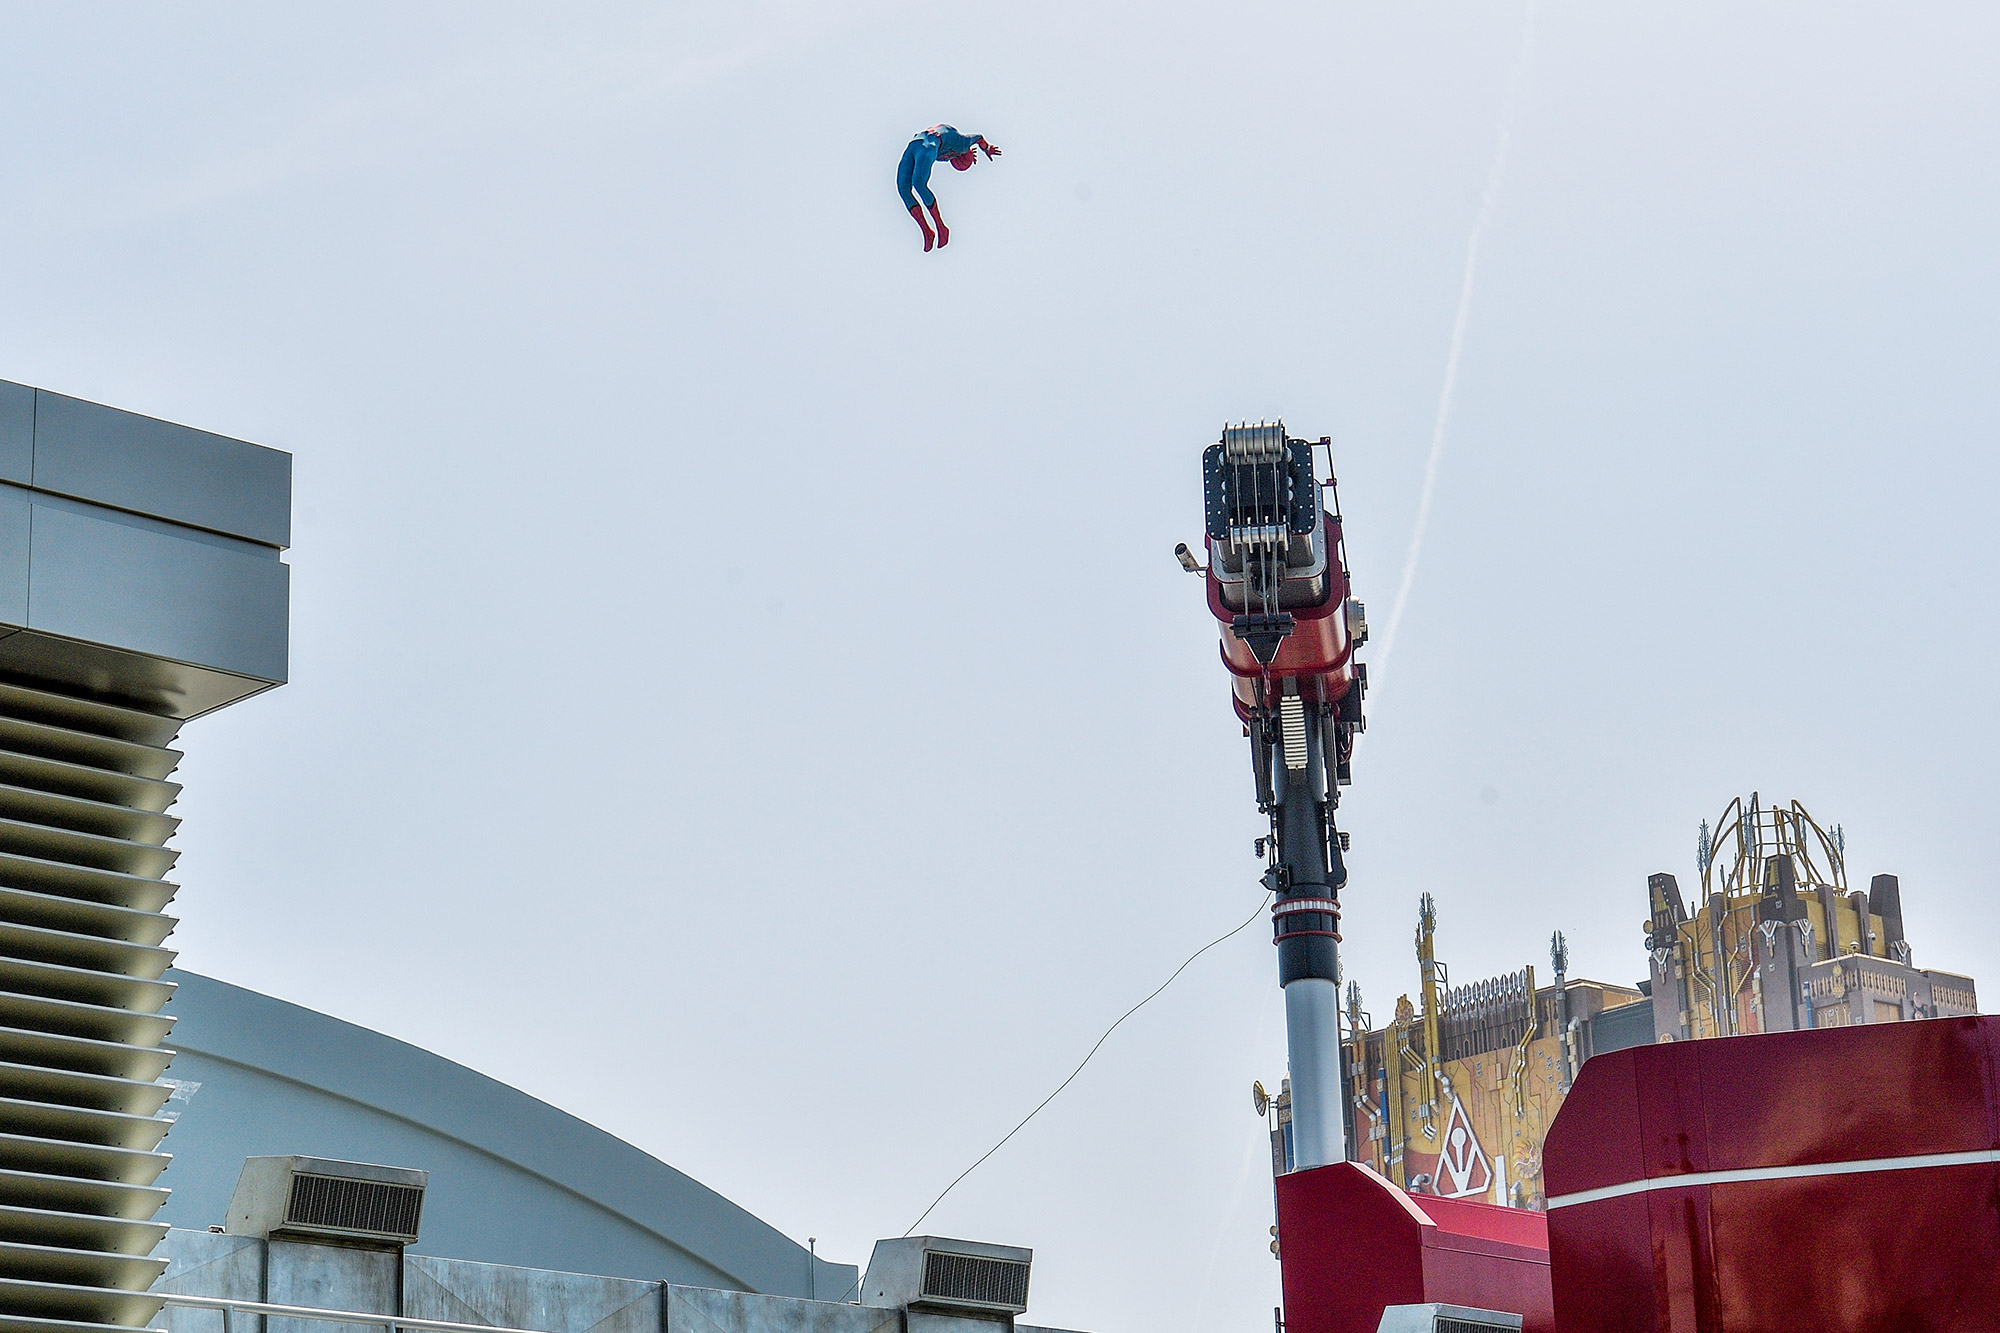 A stuntronic audio-animatronic Spider-Man is flung across the top of the Web Slingers: A Spider-Man Adventure attraction at Avengers Campus inside Disney California Adventure in Anaheim, CA, on Wednesday, June 2, 2021